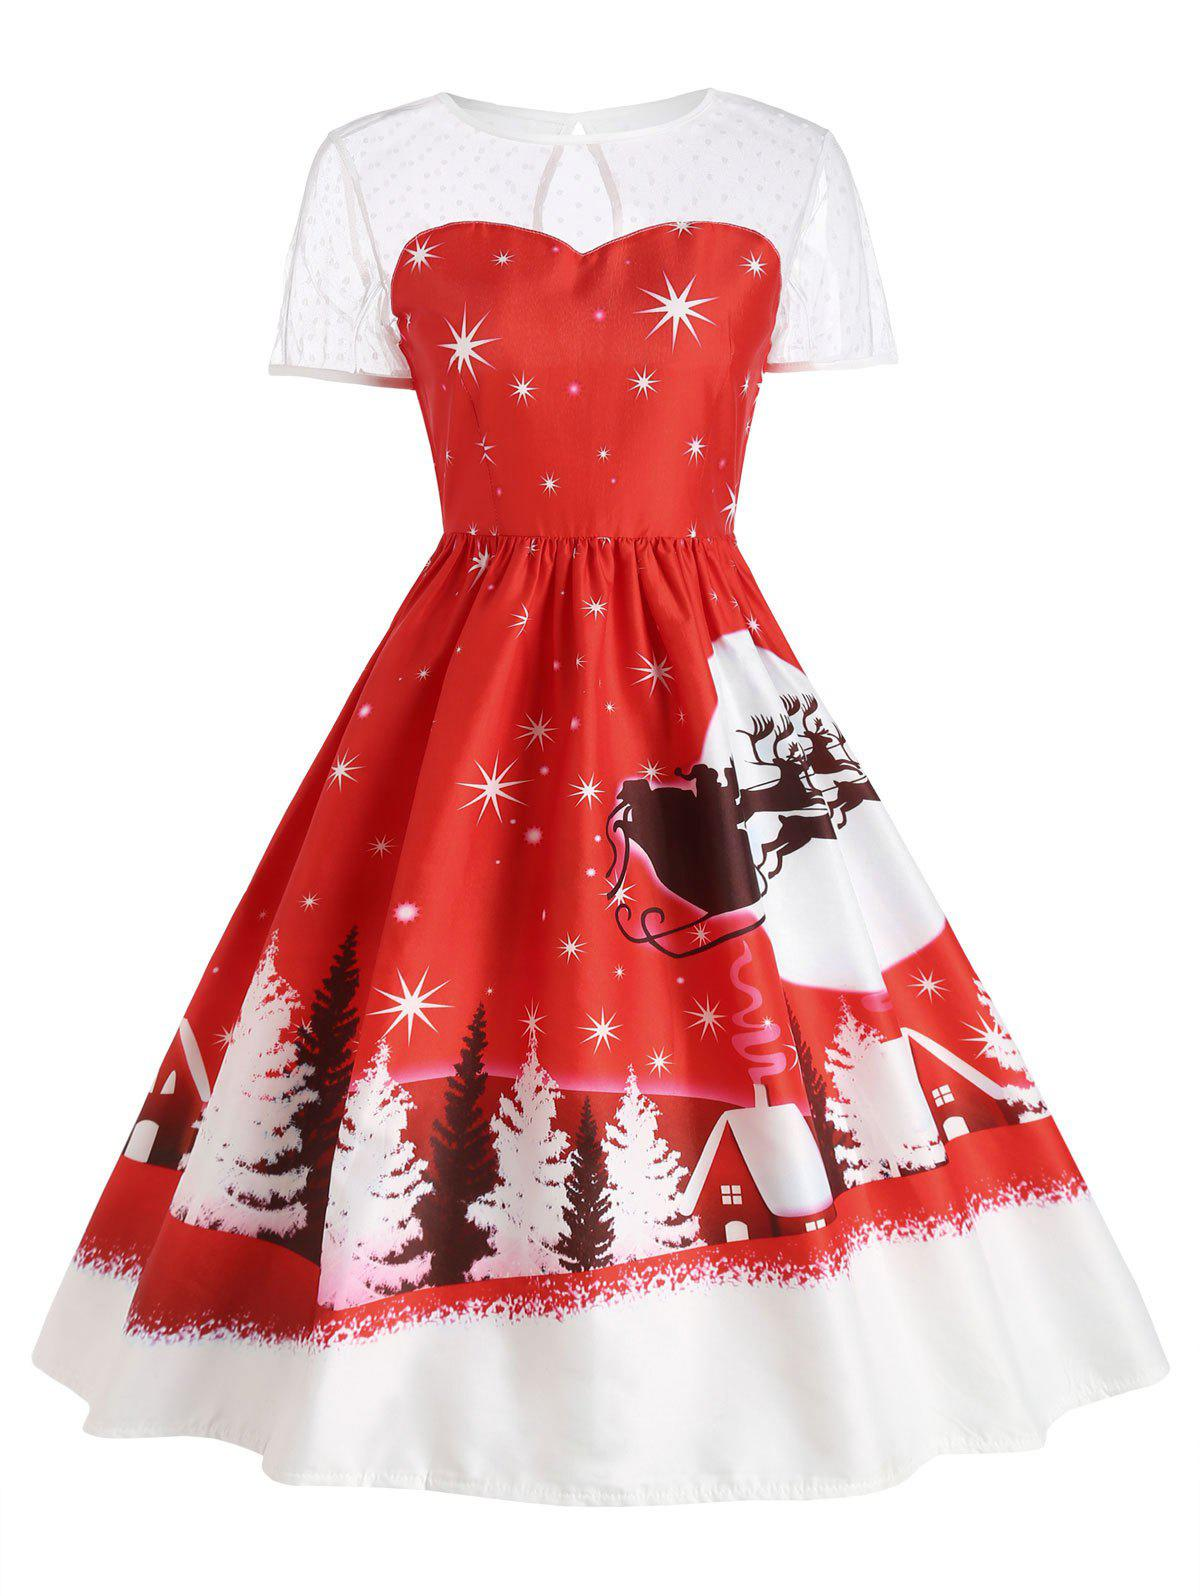 Santa Claus Deer Vintage Christmas DressWOMEN<br><br>Size: M; Color: RED; Style: Cute; Material: Polyester; Silhouette: Ball Gown; Dresses Length: Mid-Calf; Neckline: Round Collar; Sleeve Length: Short Sleeves; Pattern Type: Print; With Belt: No; Season: Fall,Winter; Weight: 0.2400kg; Package Contents: 1 x Dress;